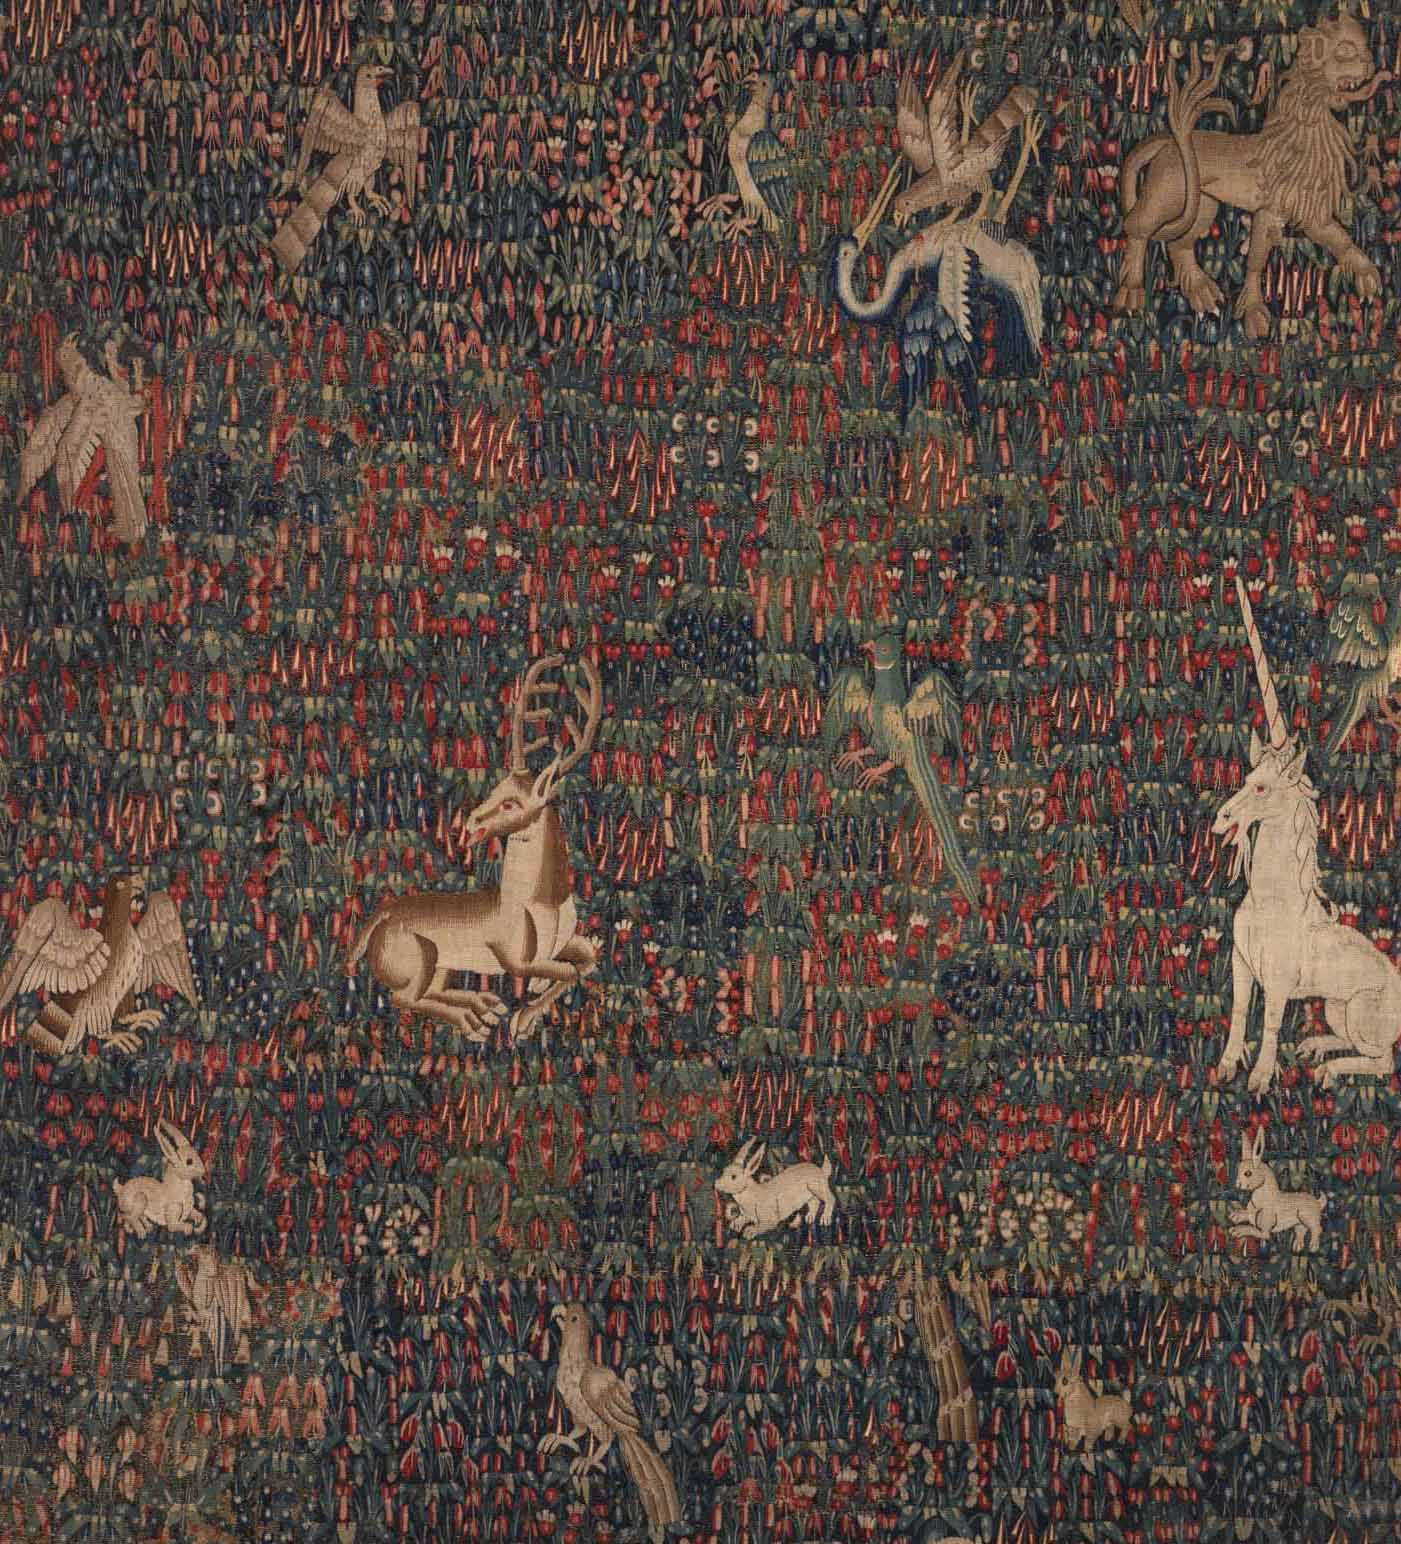 AnonymAnonymous (French), Tapestry from Chateau de Corances, Early 16th Century, Woold, Dims Overall: 94 3/4 x 88 7/16 in. (240.6 x 224.7 cm), Gift of Miss Lois Clarke 64.11ous (French), Tapestry, Early 16th Century